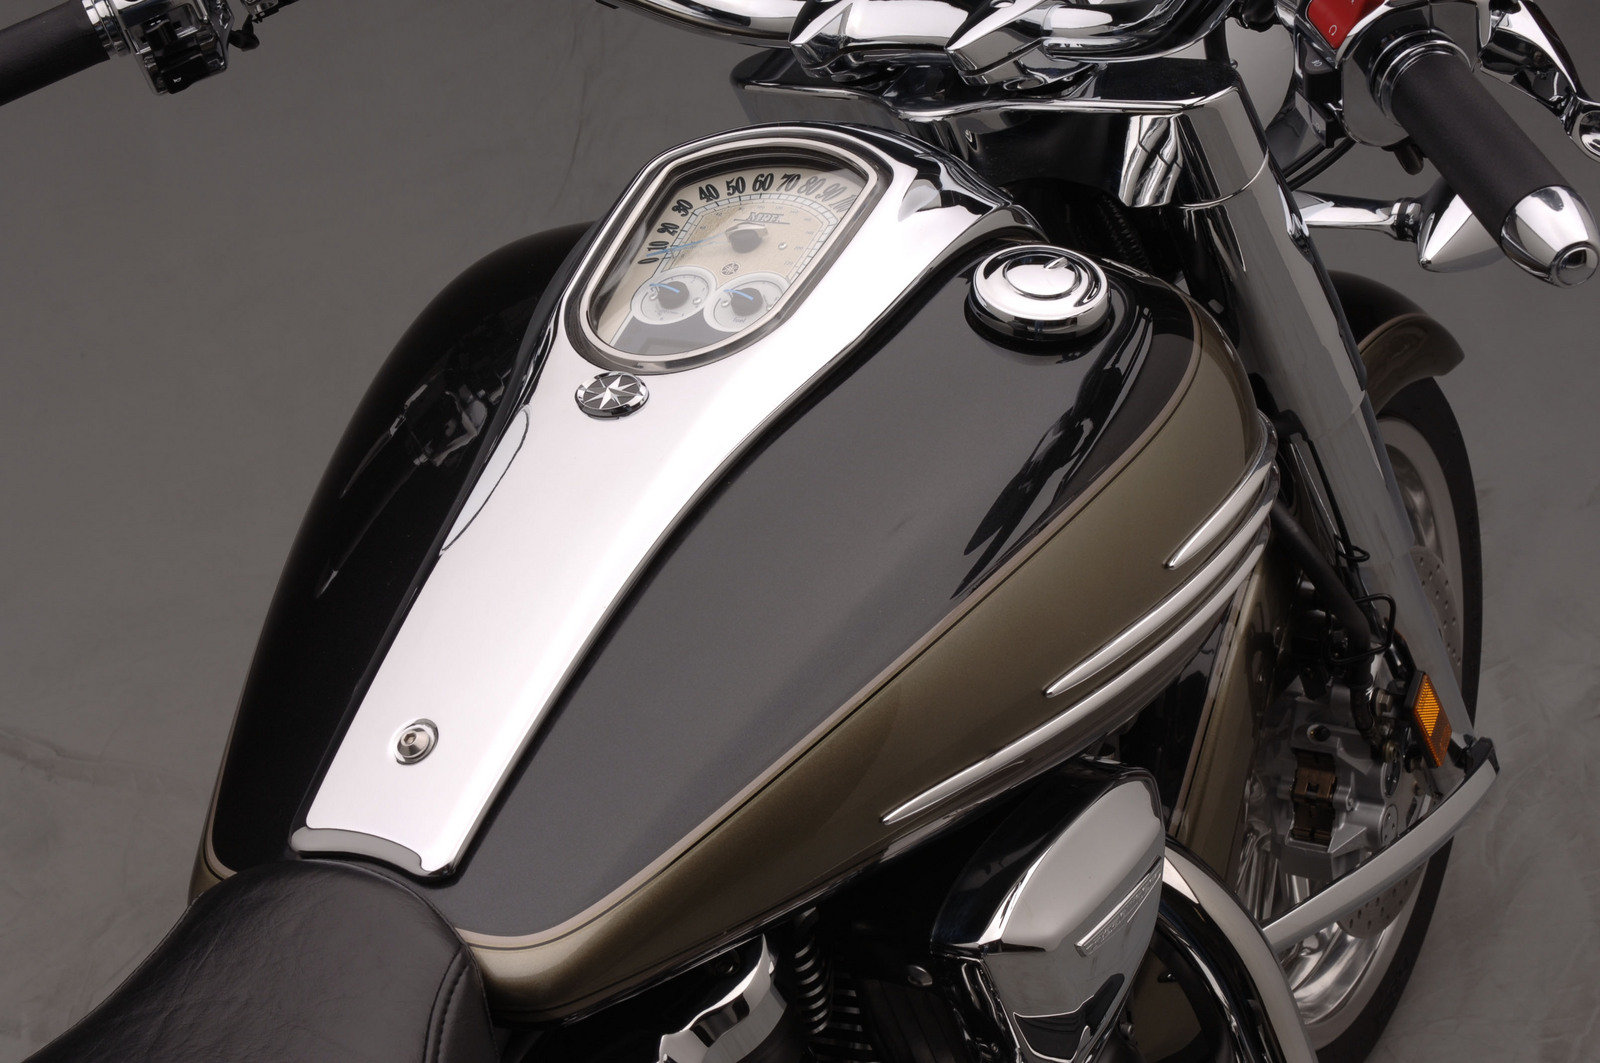 2006 yamaha roadliner s picture 46313 motorcycle for 2006 yamaha stratoliner review